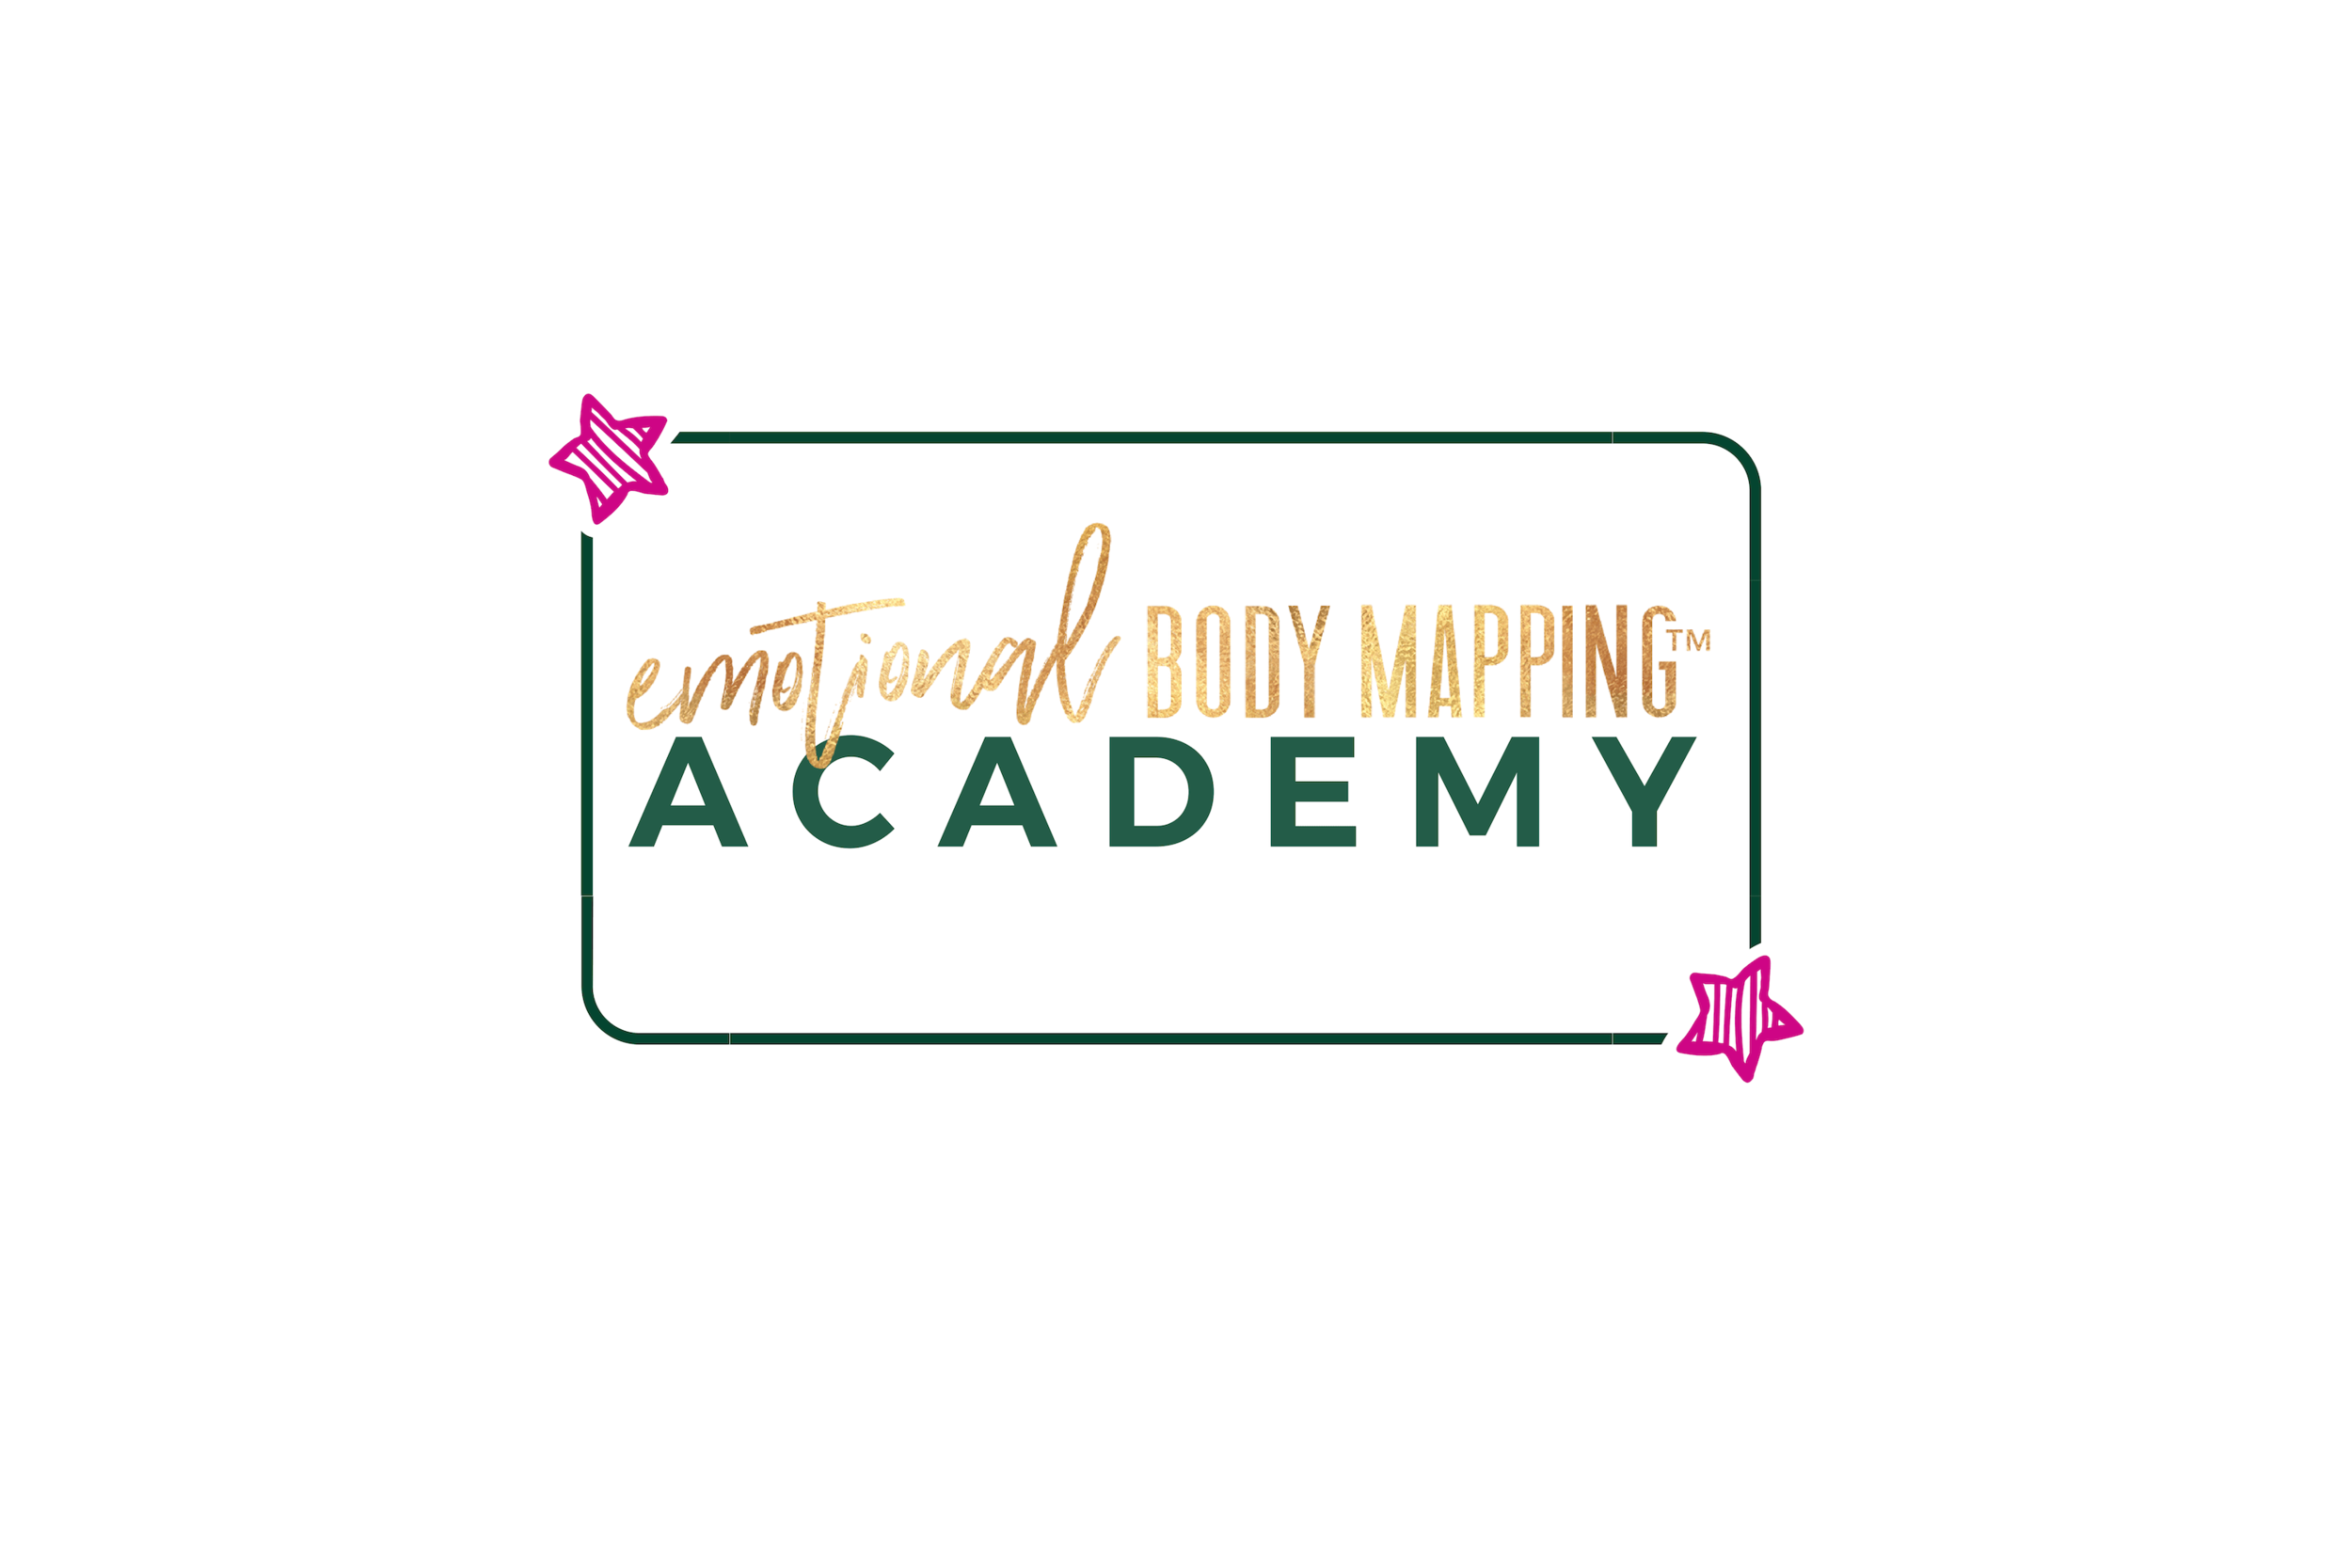 Emotional Body Mapping Academy